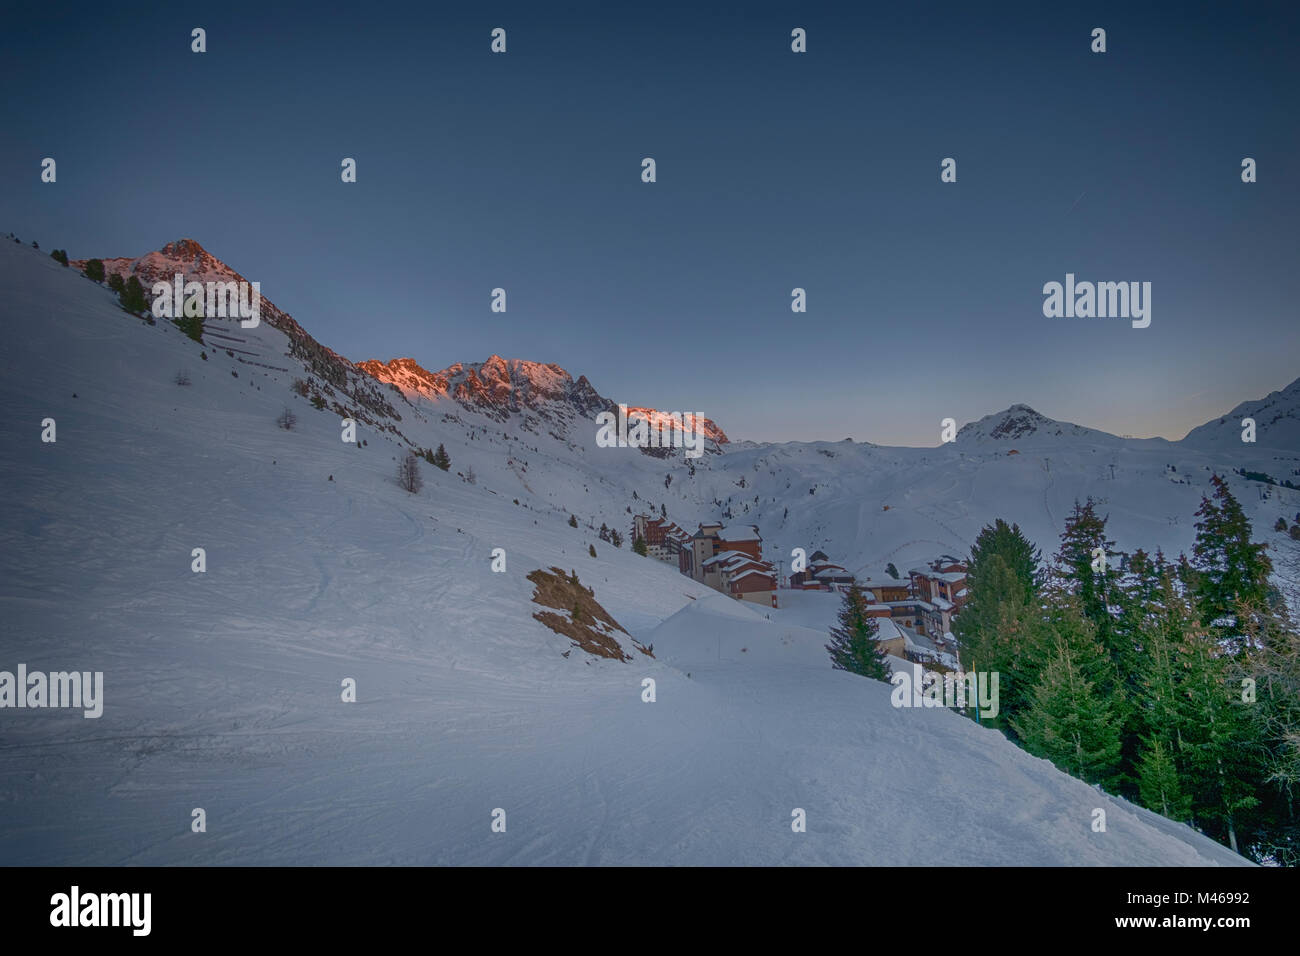 Winter sunset landscape at Belle Plagne ski resort in La Plagne, Savoie, France. Credit: Malcolm Park/Alamy. Stock Photo